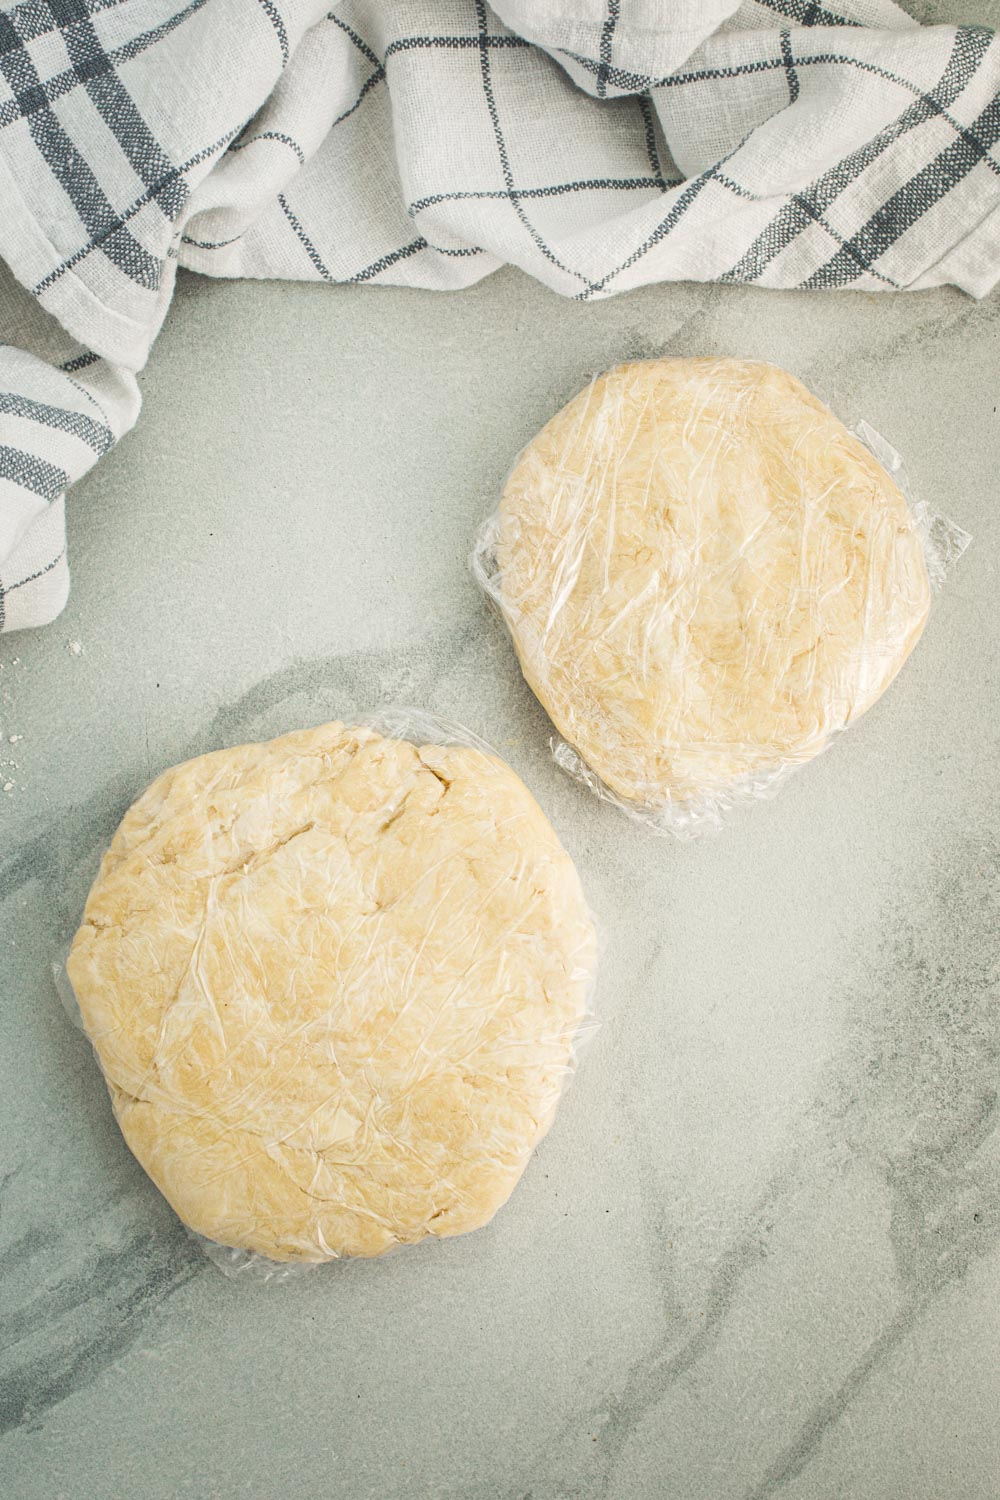 Flaky pie crust dough wrapped in plastic wrap.